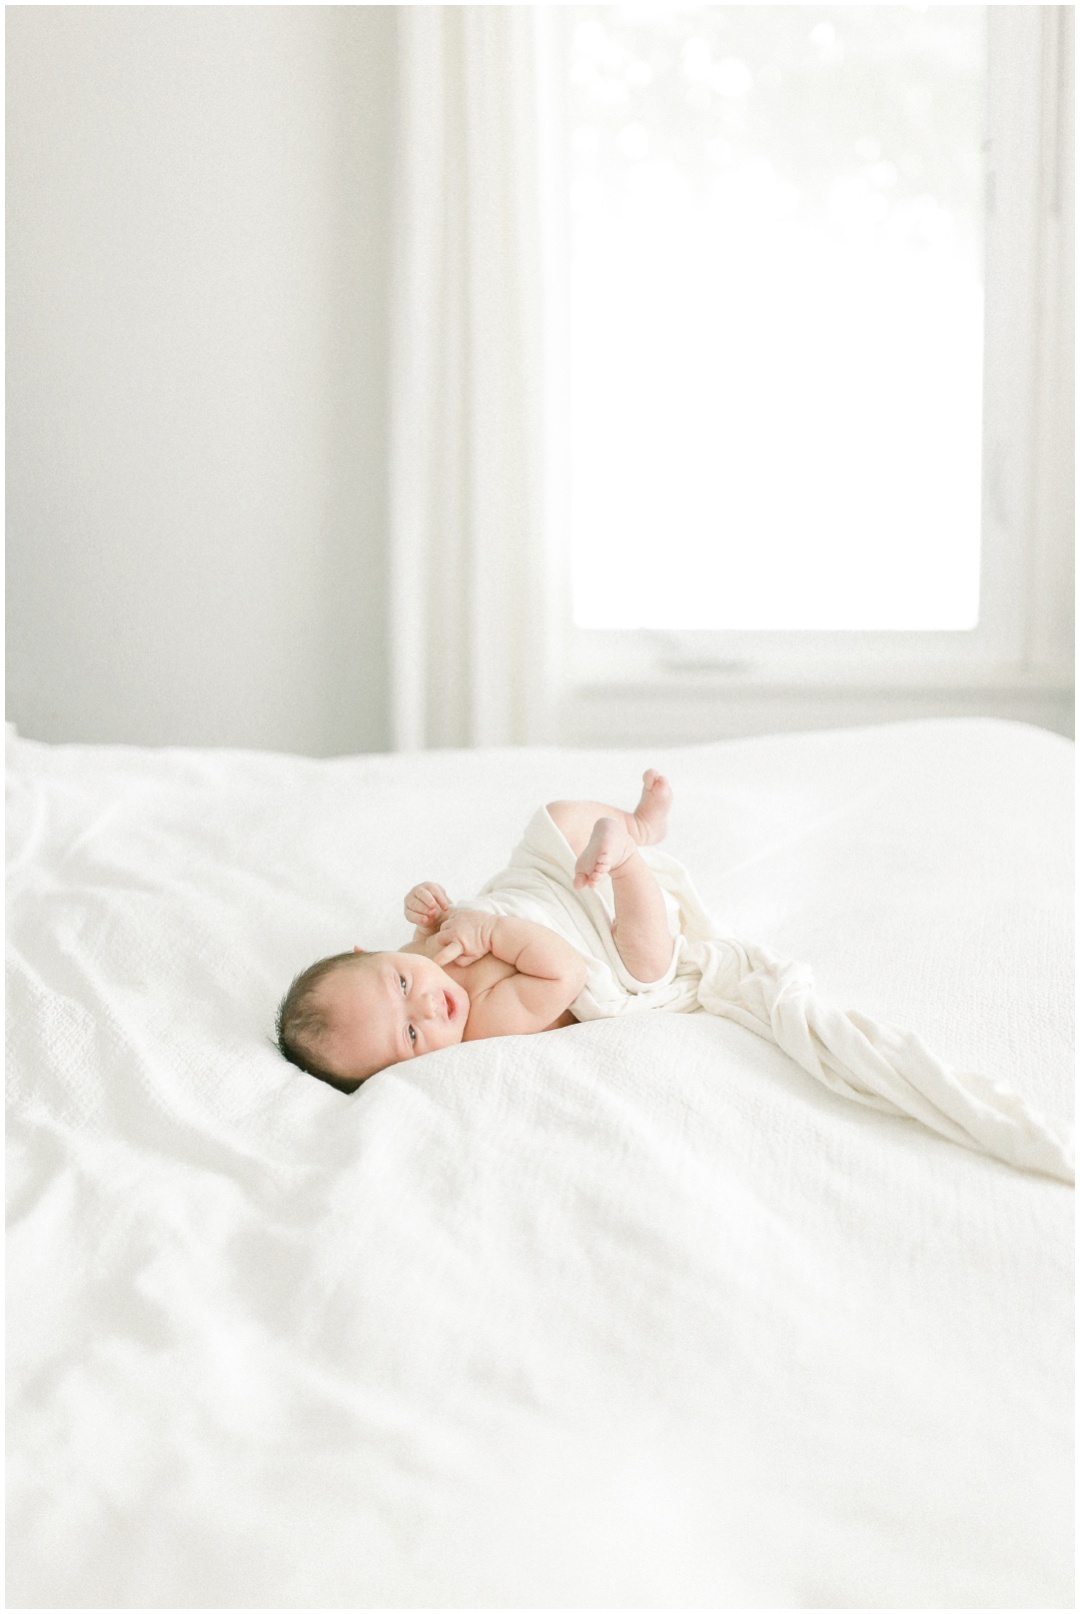 Newport_Beach_Newborn_Photographer_Newport_Beach_Maternity_Photographer_Orange_County_Family_Photographer_Cori_Kleckner_Photography_Huntington_Beach_Photographer__Erin_Dooney_Brandon_Dooney__Avery_Dooney_Family_Photos__2824.jpg